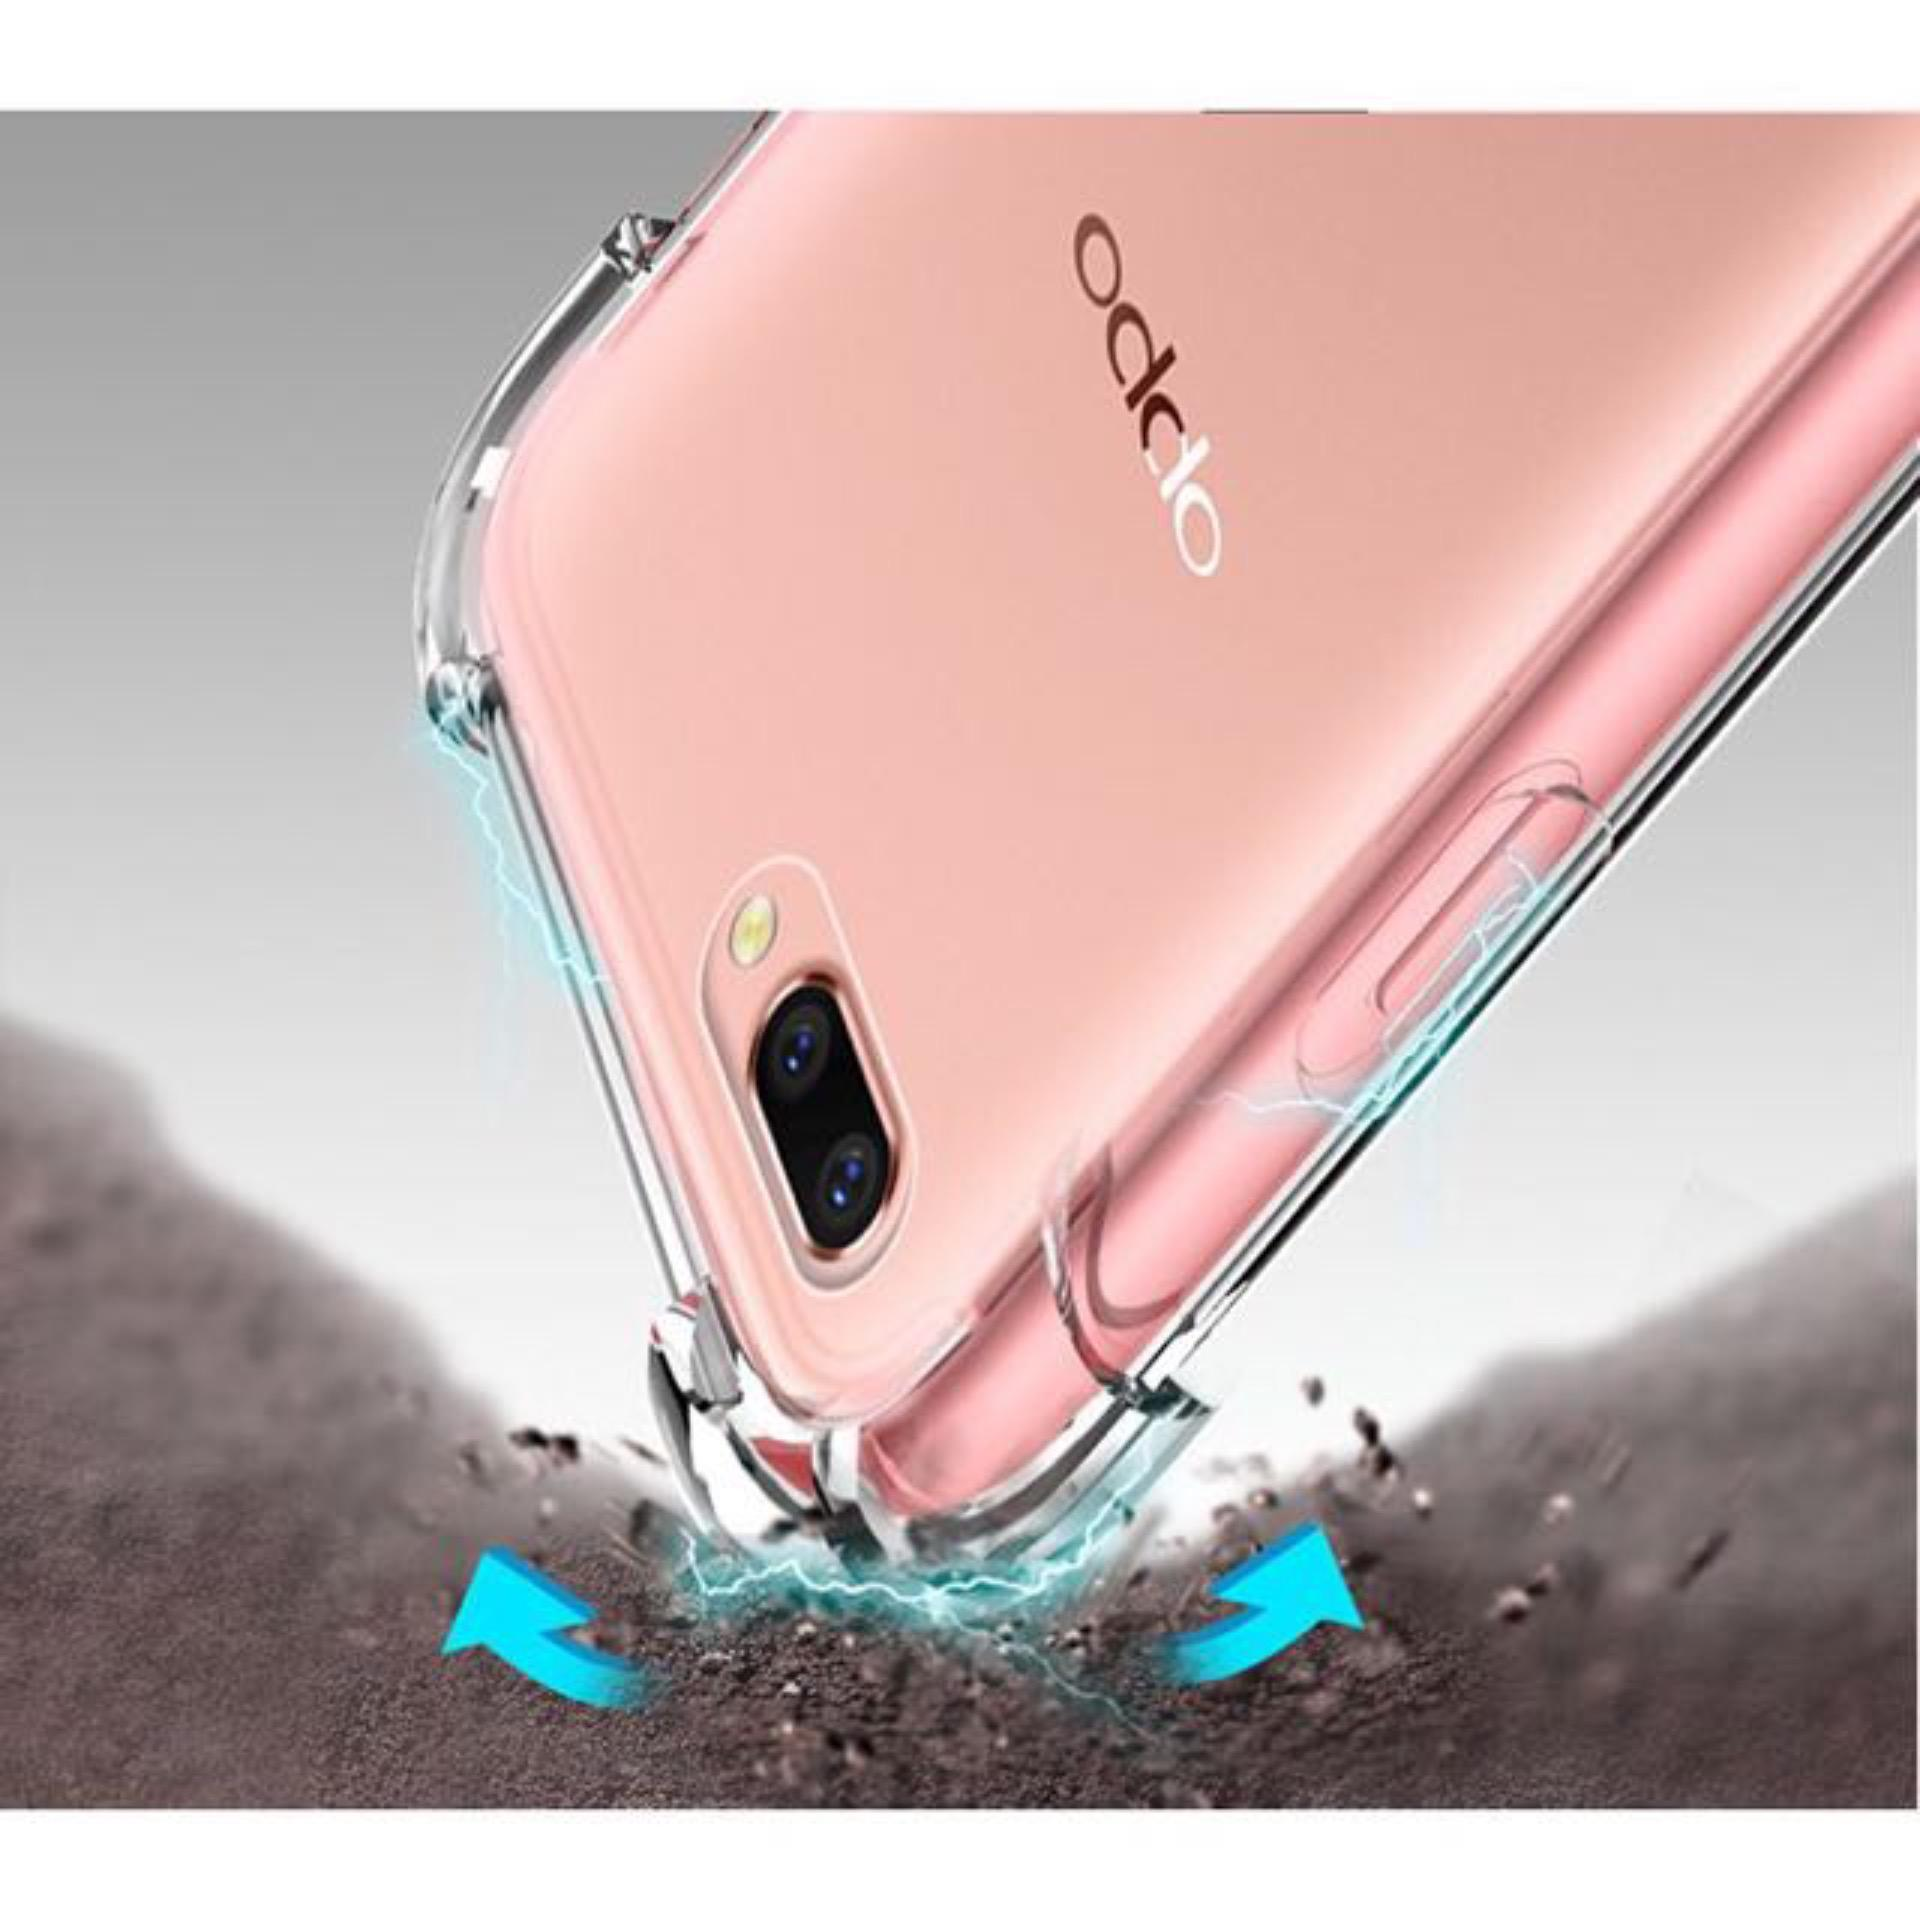 [SG Seller] 360 Degree Full Protect Back Cover Protective Shell High Quality Soft Phone Case for OPPO R9 plus